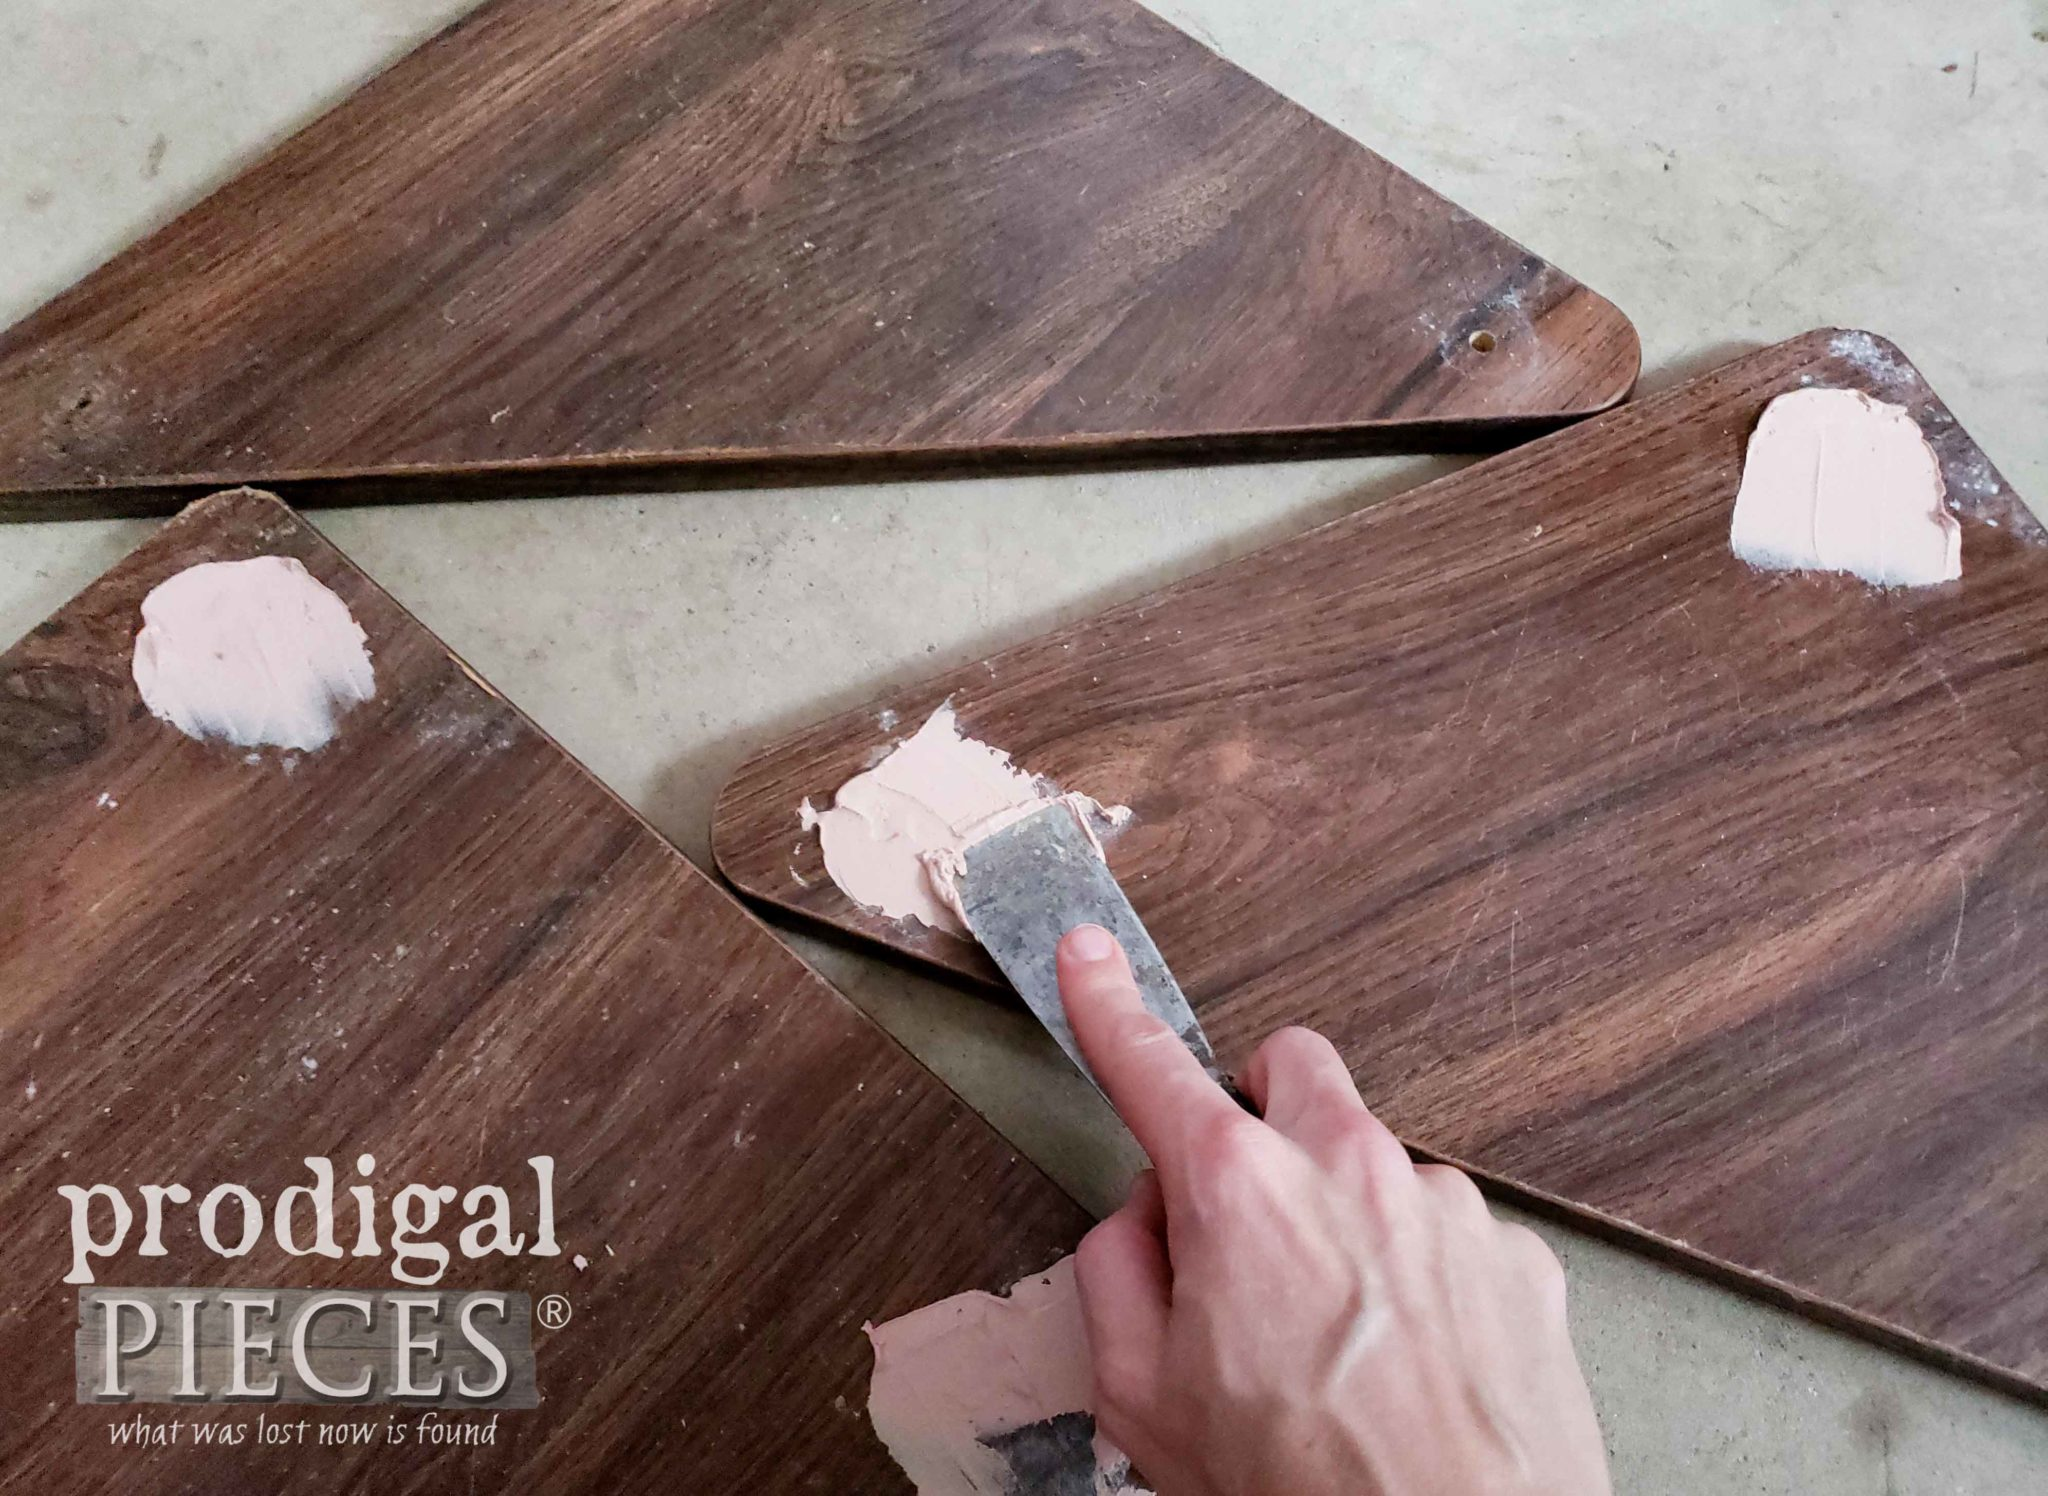 Applying Wood Filler to Shelf Holes | prodigalpieces.com